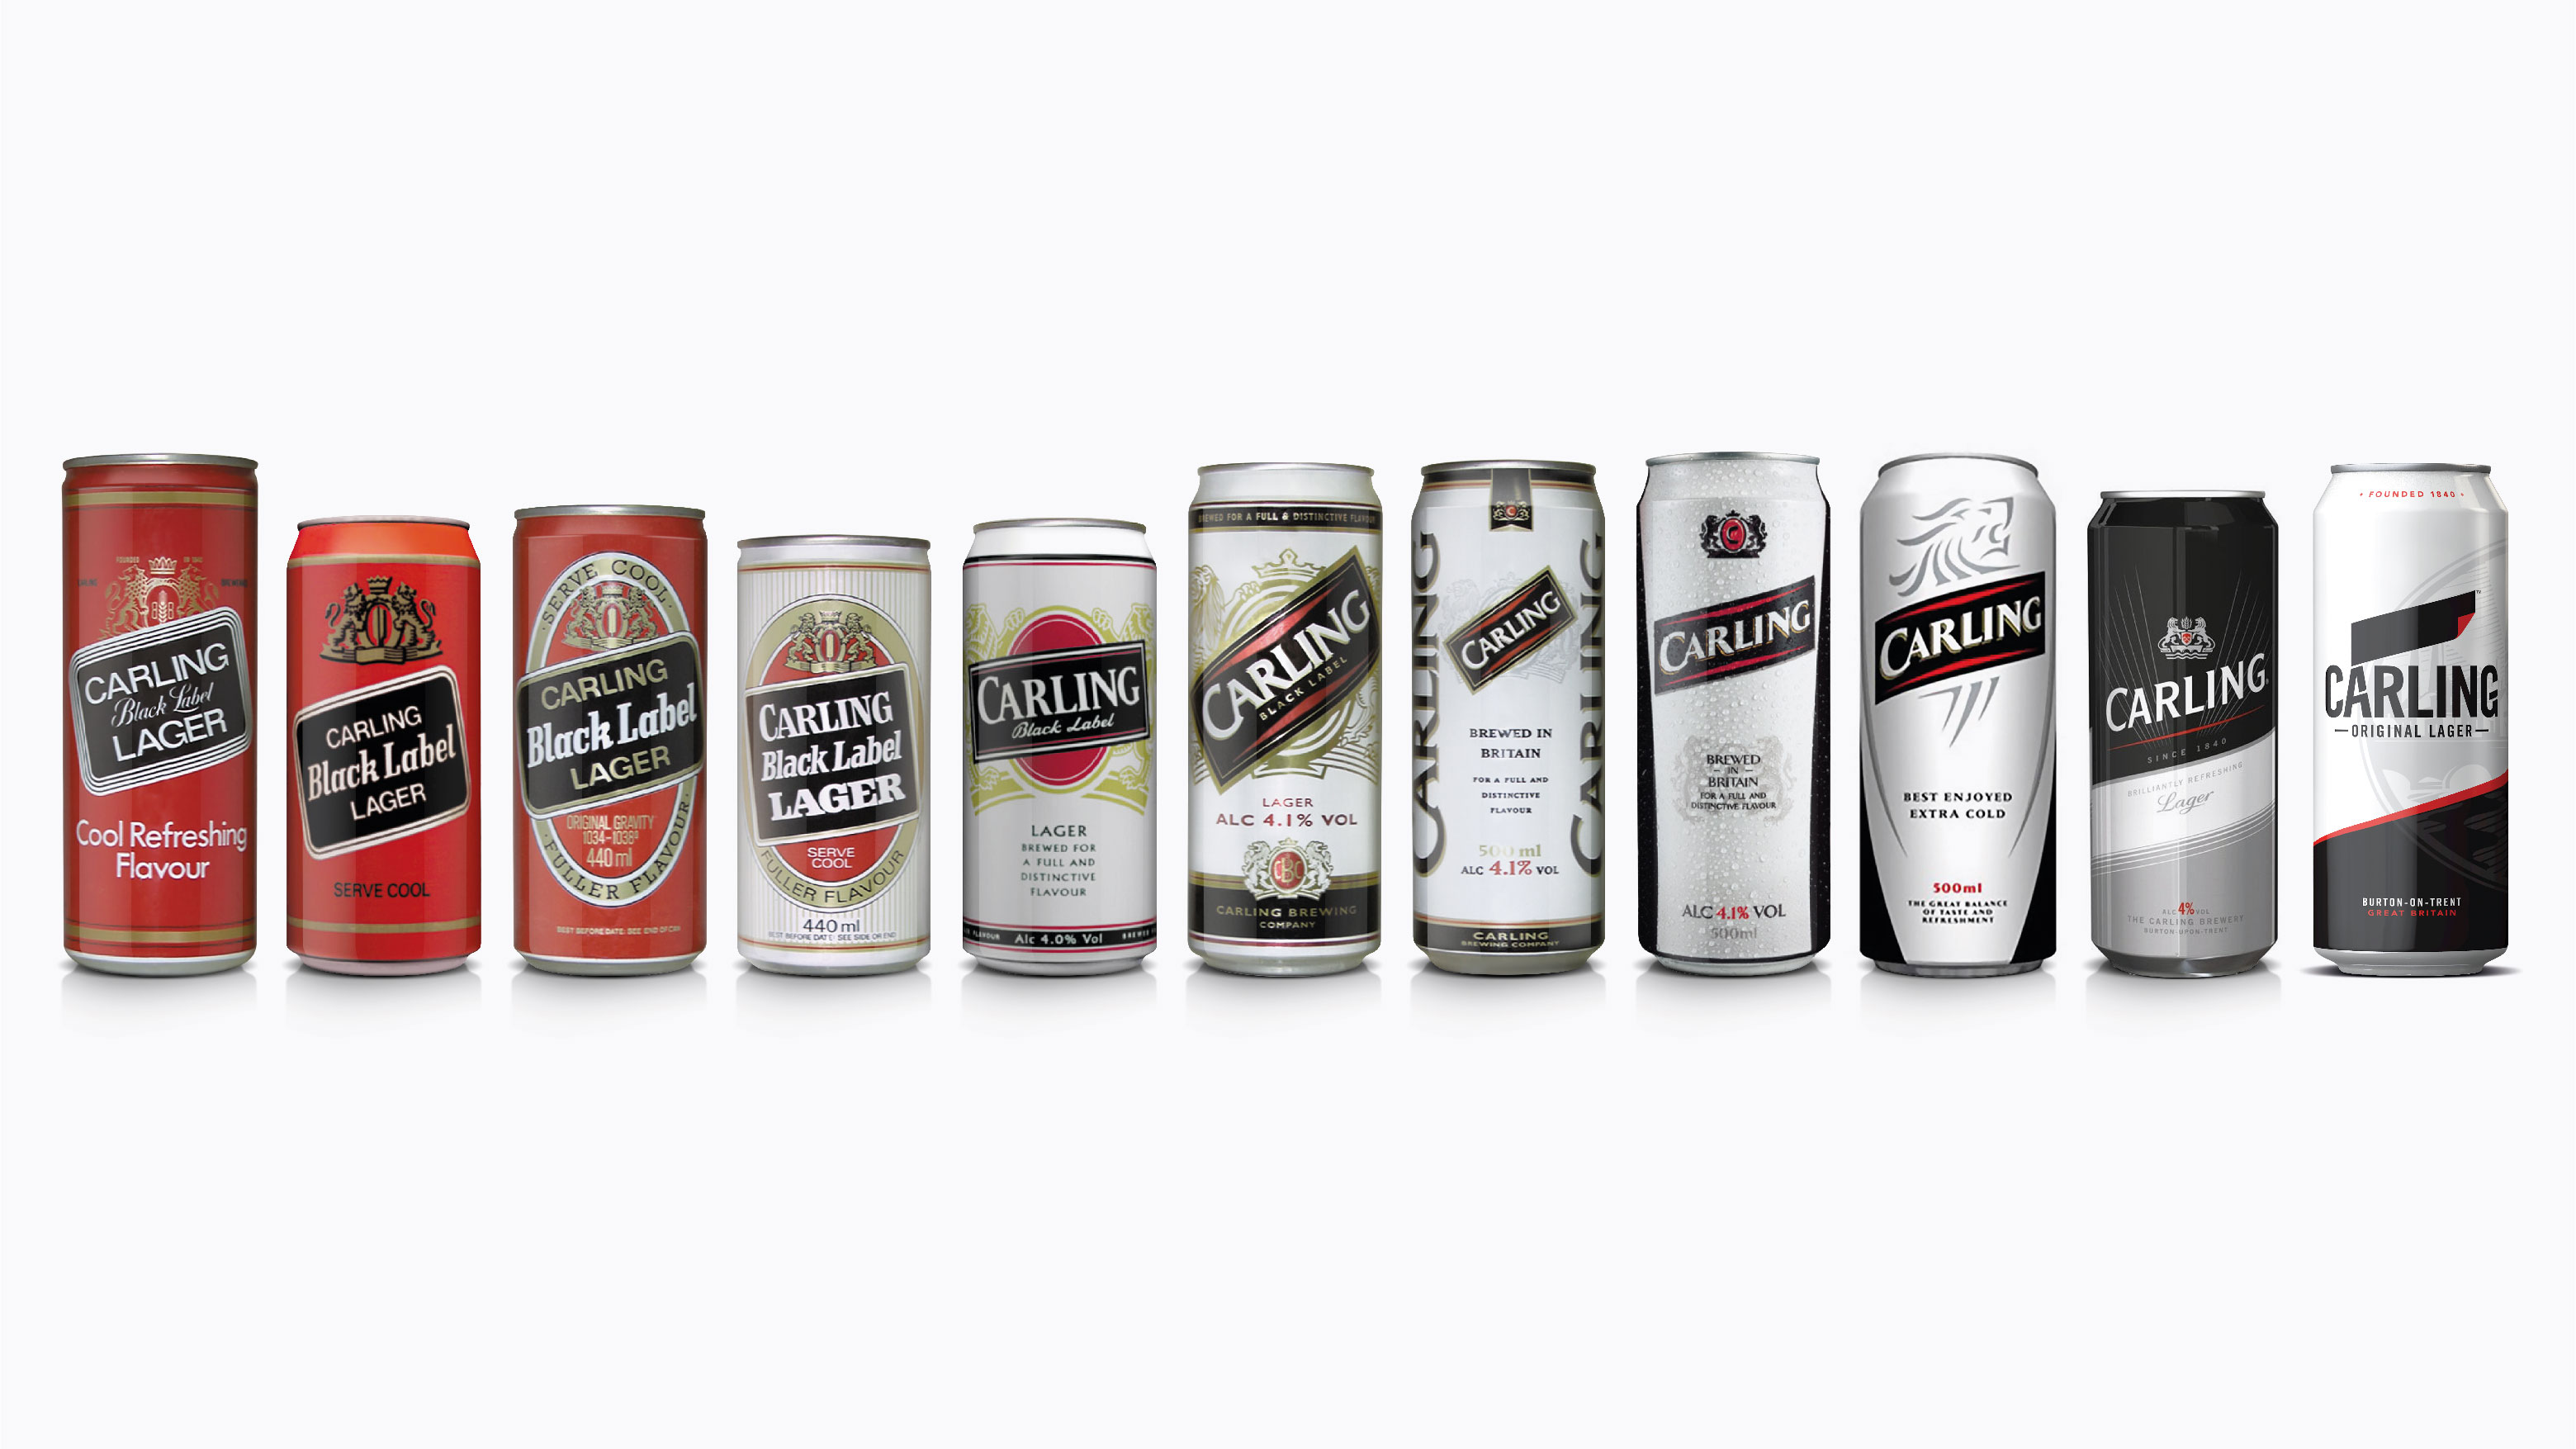 can history including new can CARLING